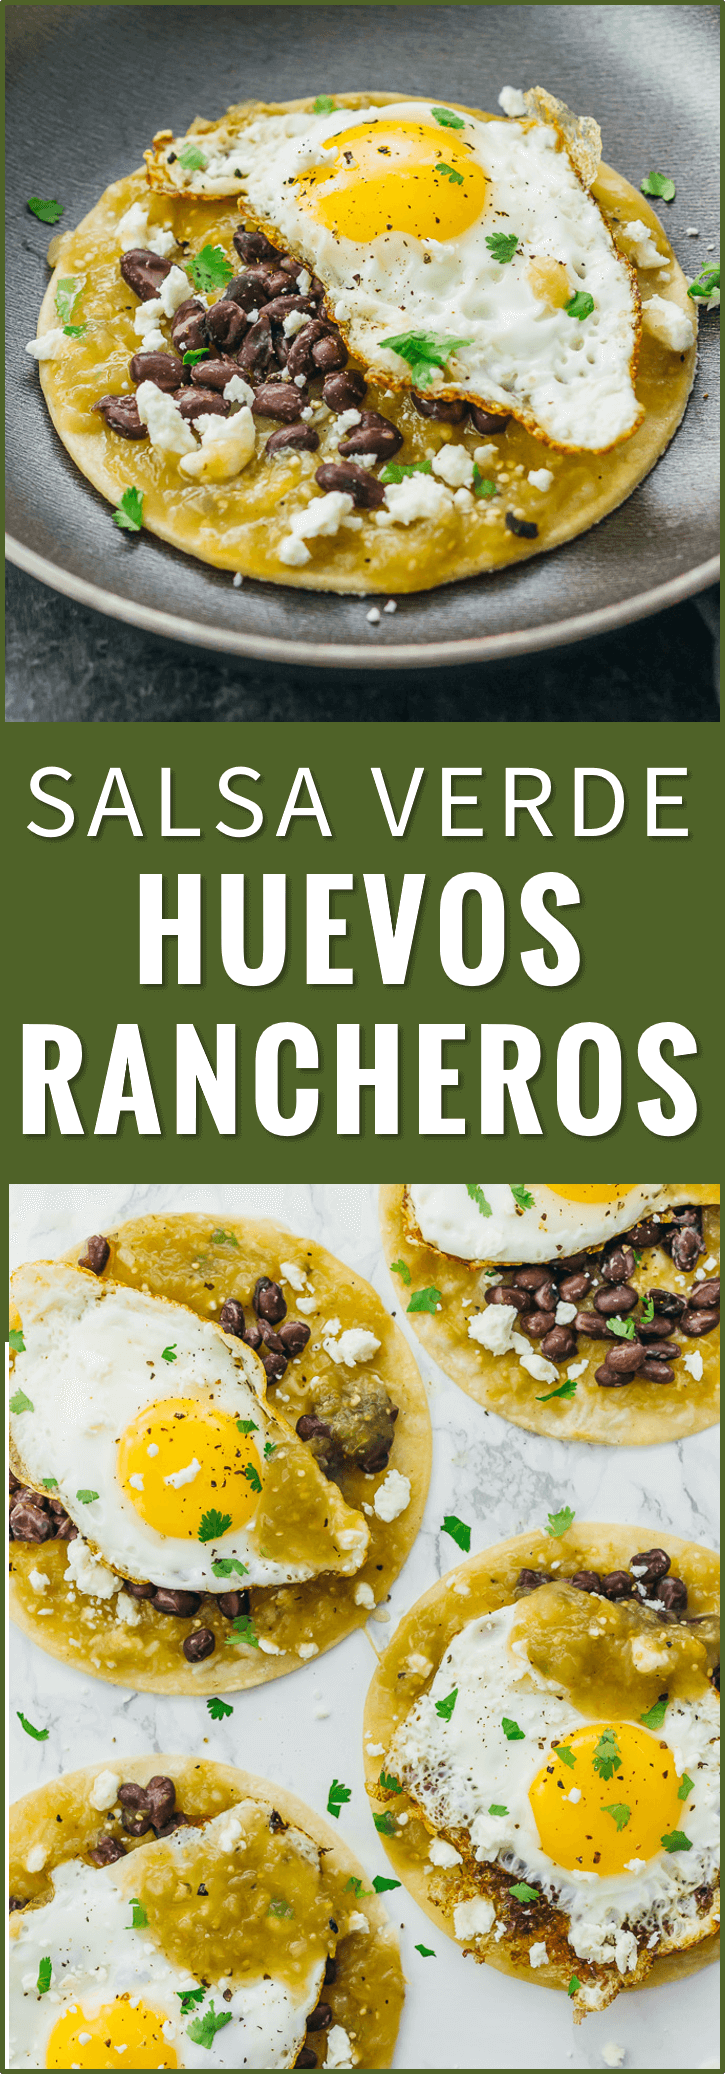 Huevos rancheros are a delicious and healthy Mexican breakfast with fried eggs, black beans, salsa verde, and cheese over corn tortillas. recipe, authentic, easy, sauce, breakfast, mexicanos, skillet, receta, tacos, vegetarian, tostadas, bowl, pioneer woman, paleo, traditional, low carb, baked, mexican eggs, skinnytaste, new mexico, for a crowd, cast iron, green chili, how to make, jamie oliver, best, sandwich, simple, tortilla, brunch, quick, omelet, dinner, rice, for one, classic